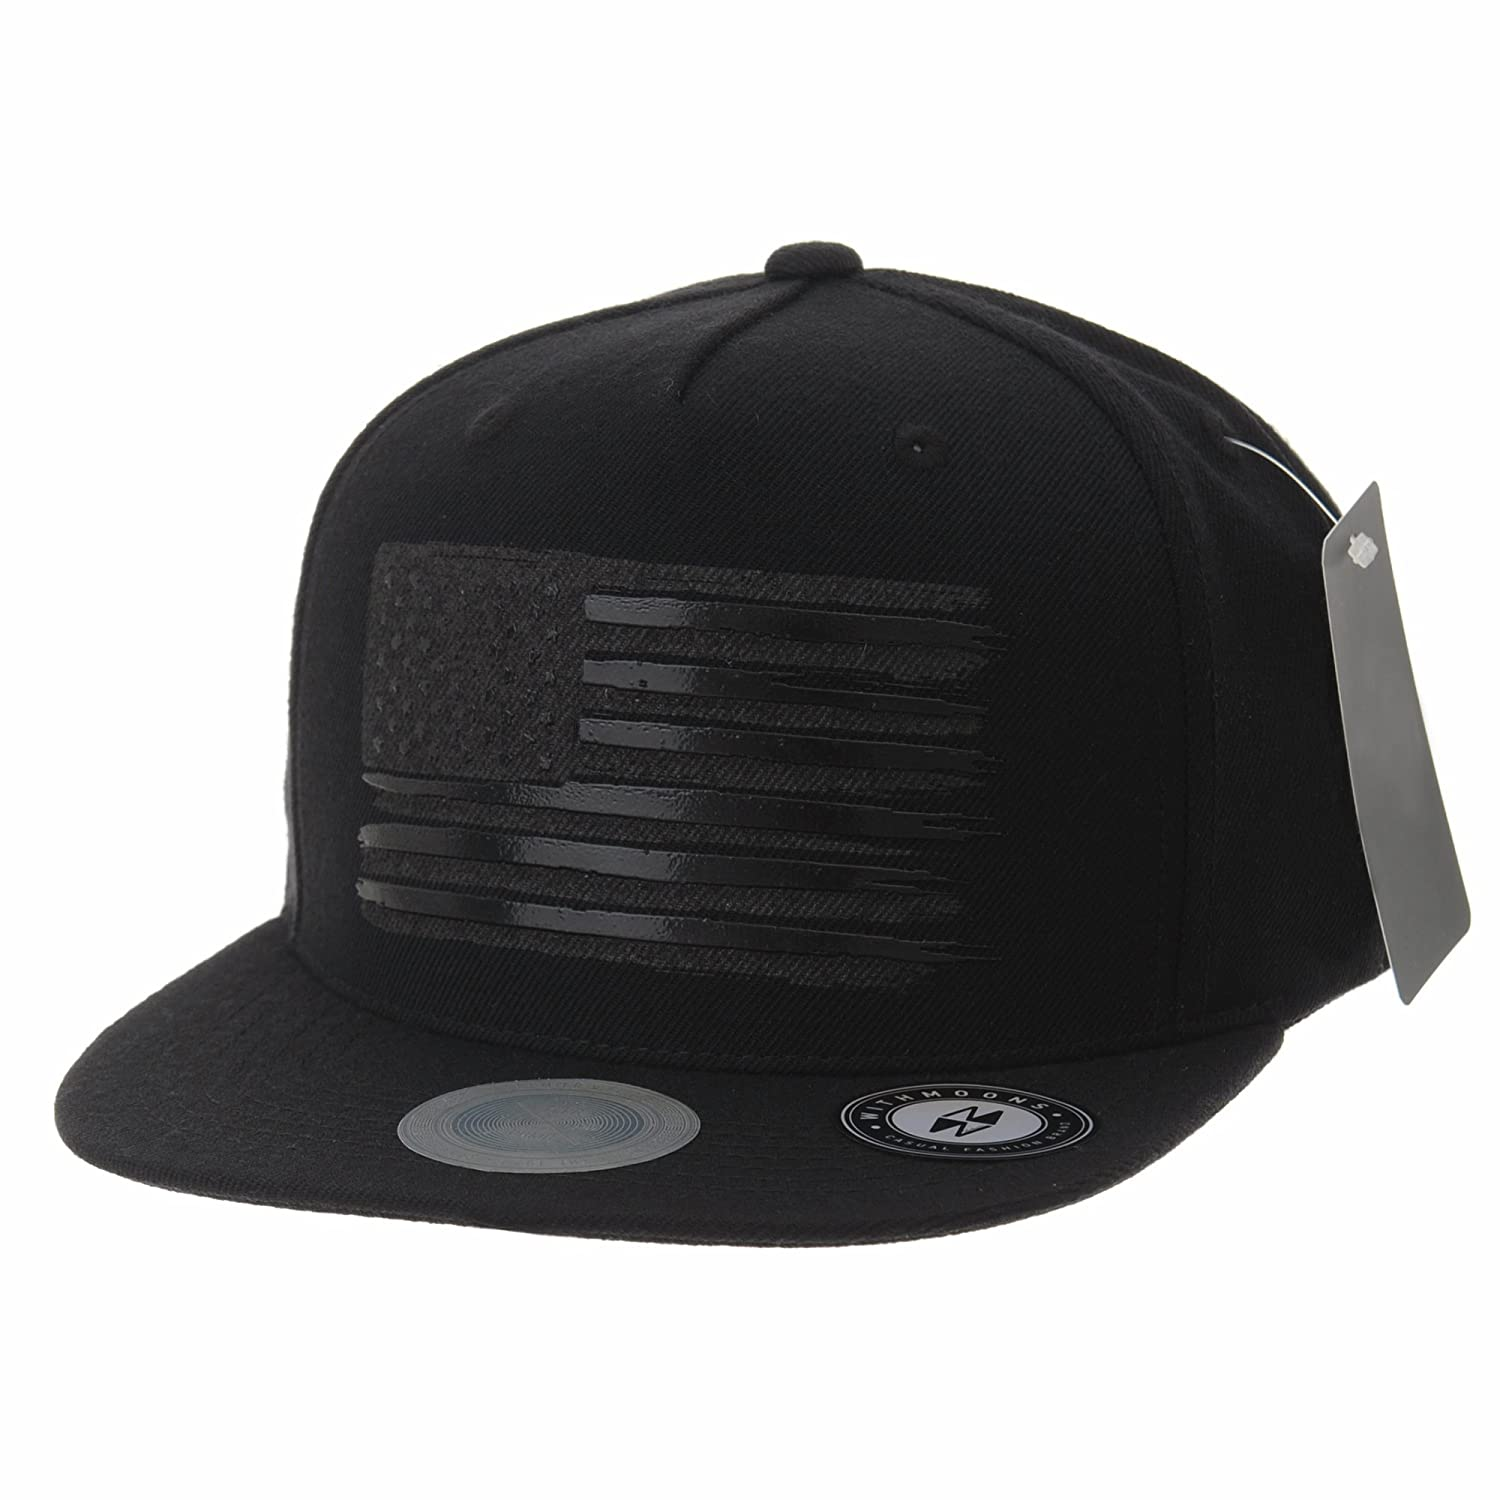 98ba1f2991641 Snapback closure for Adjustable and custom fit. Nicely finished   Light  weight fabric. To view more of our products visit  www.amazon.com shops WITHMOONS